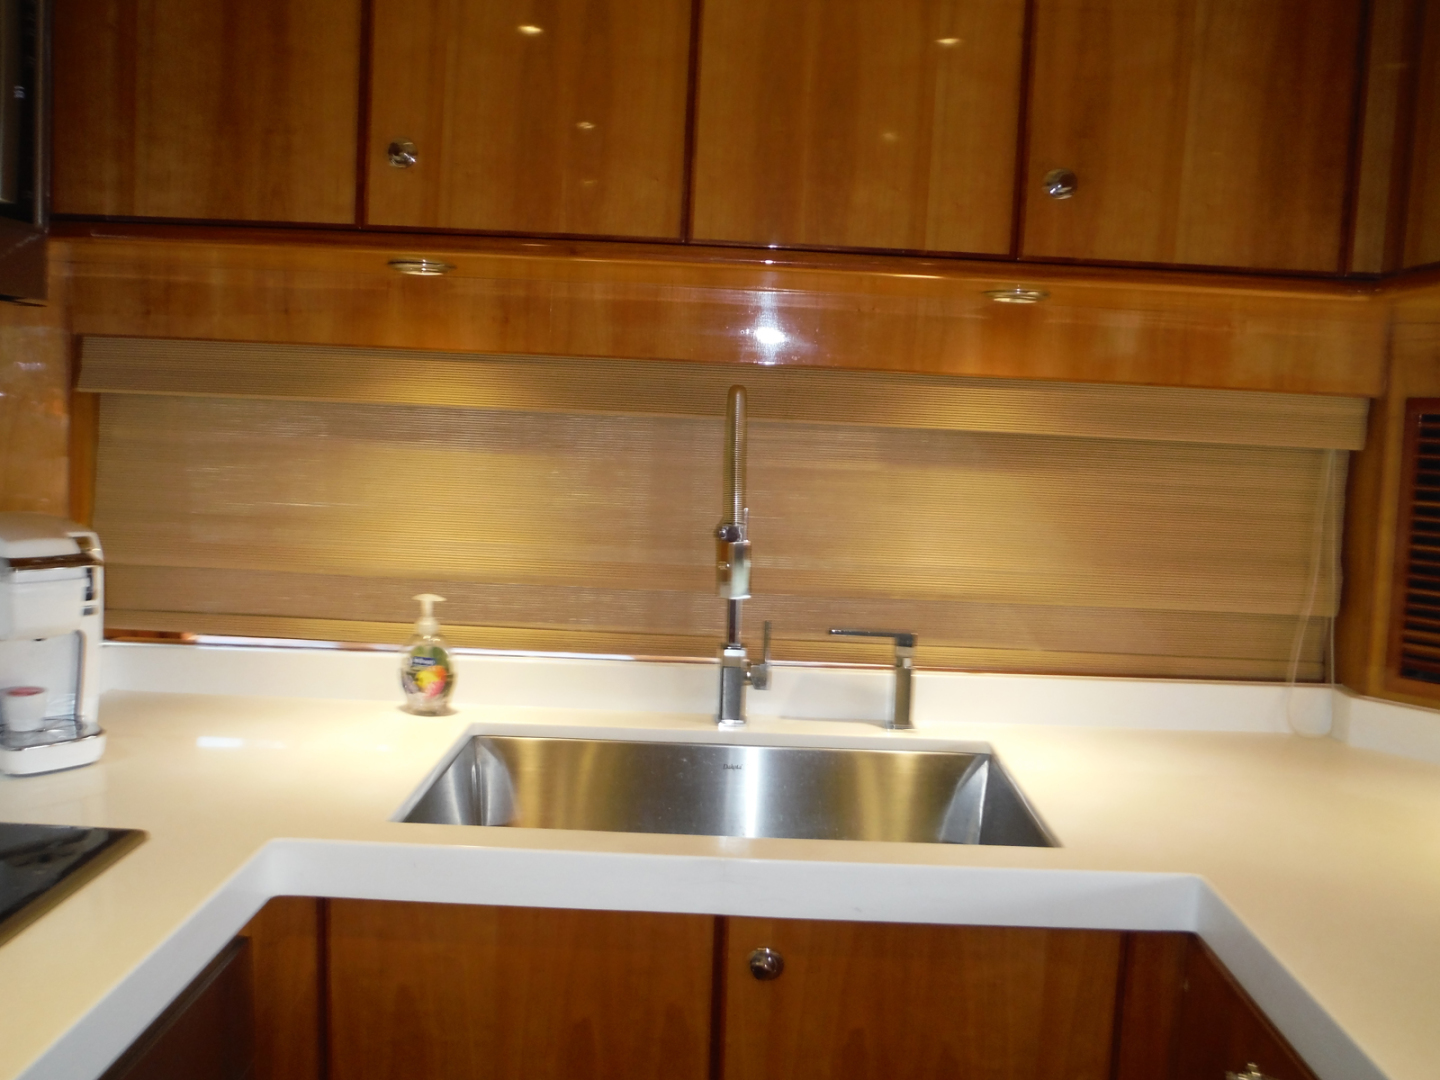 Hargrave-Flybridge Motor Yacht 2001-GRACE Fort Lauderdale-Florida-United States-Galley Sink-1091926 | Thumbnail